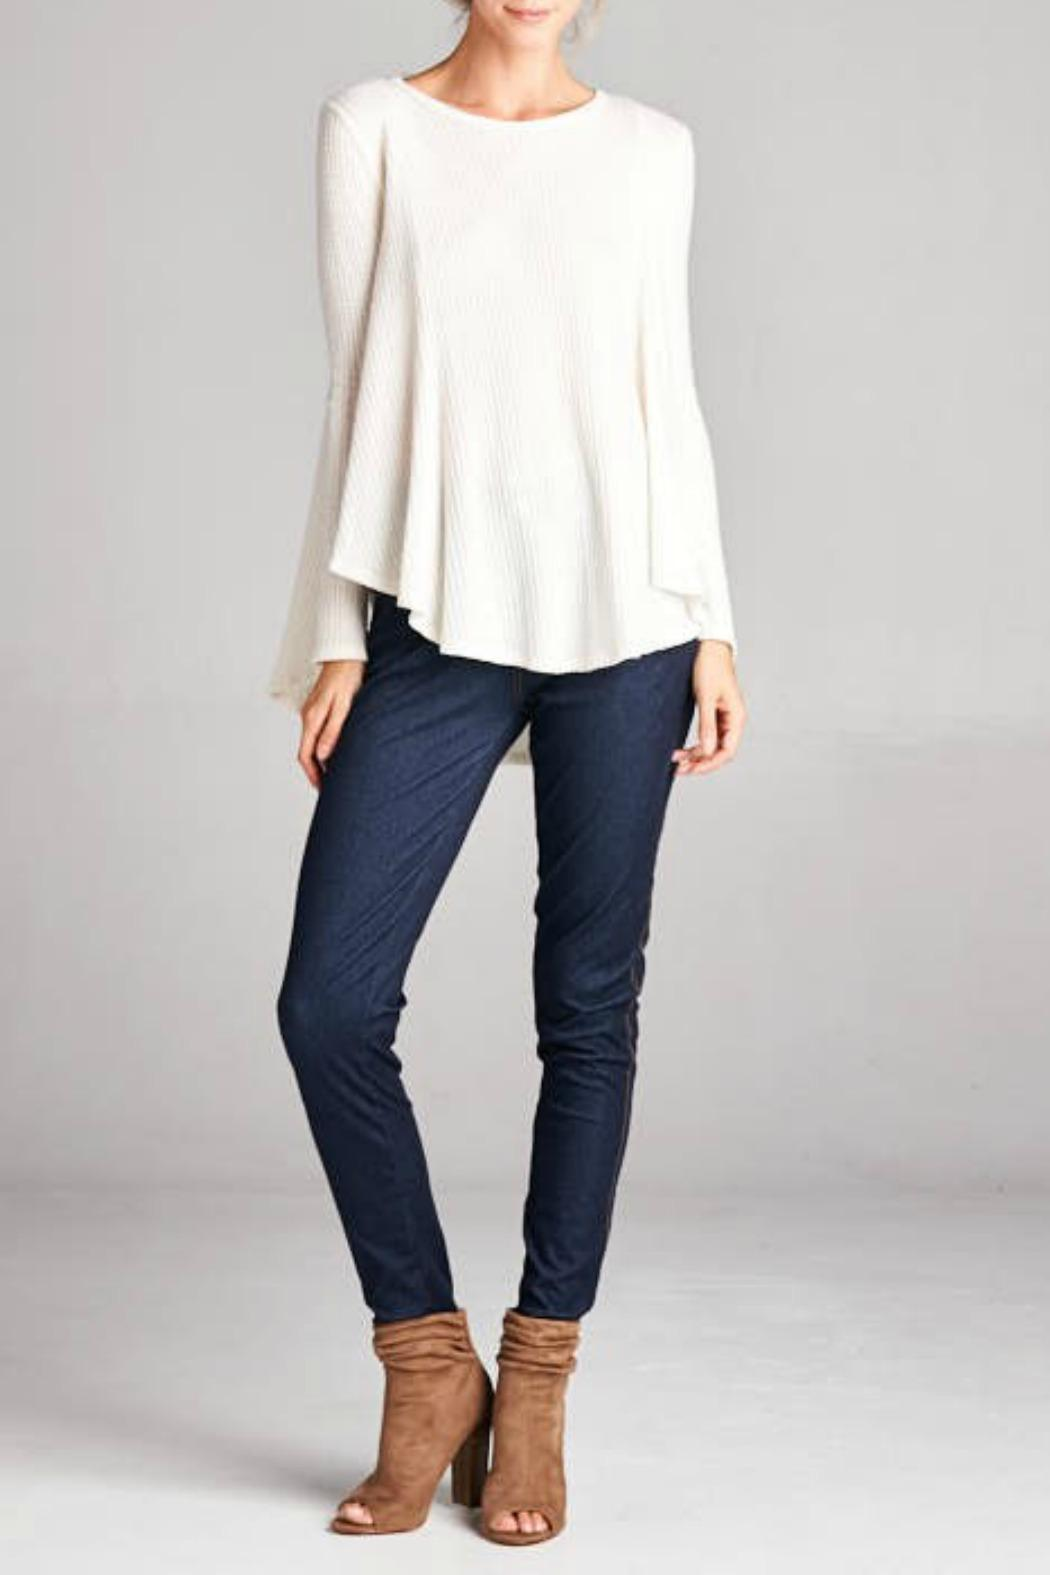 Cherish Ivory Swing Sweater from Connecticut by Deja Vu — Shoptiques